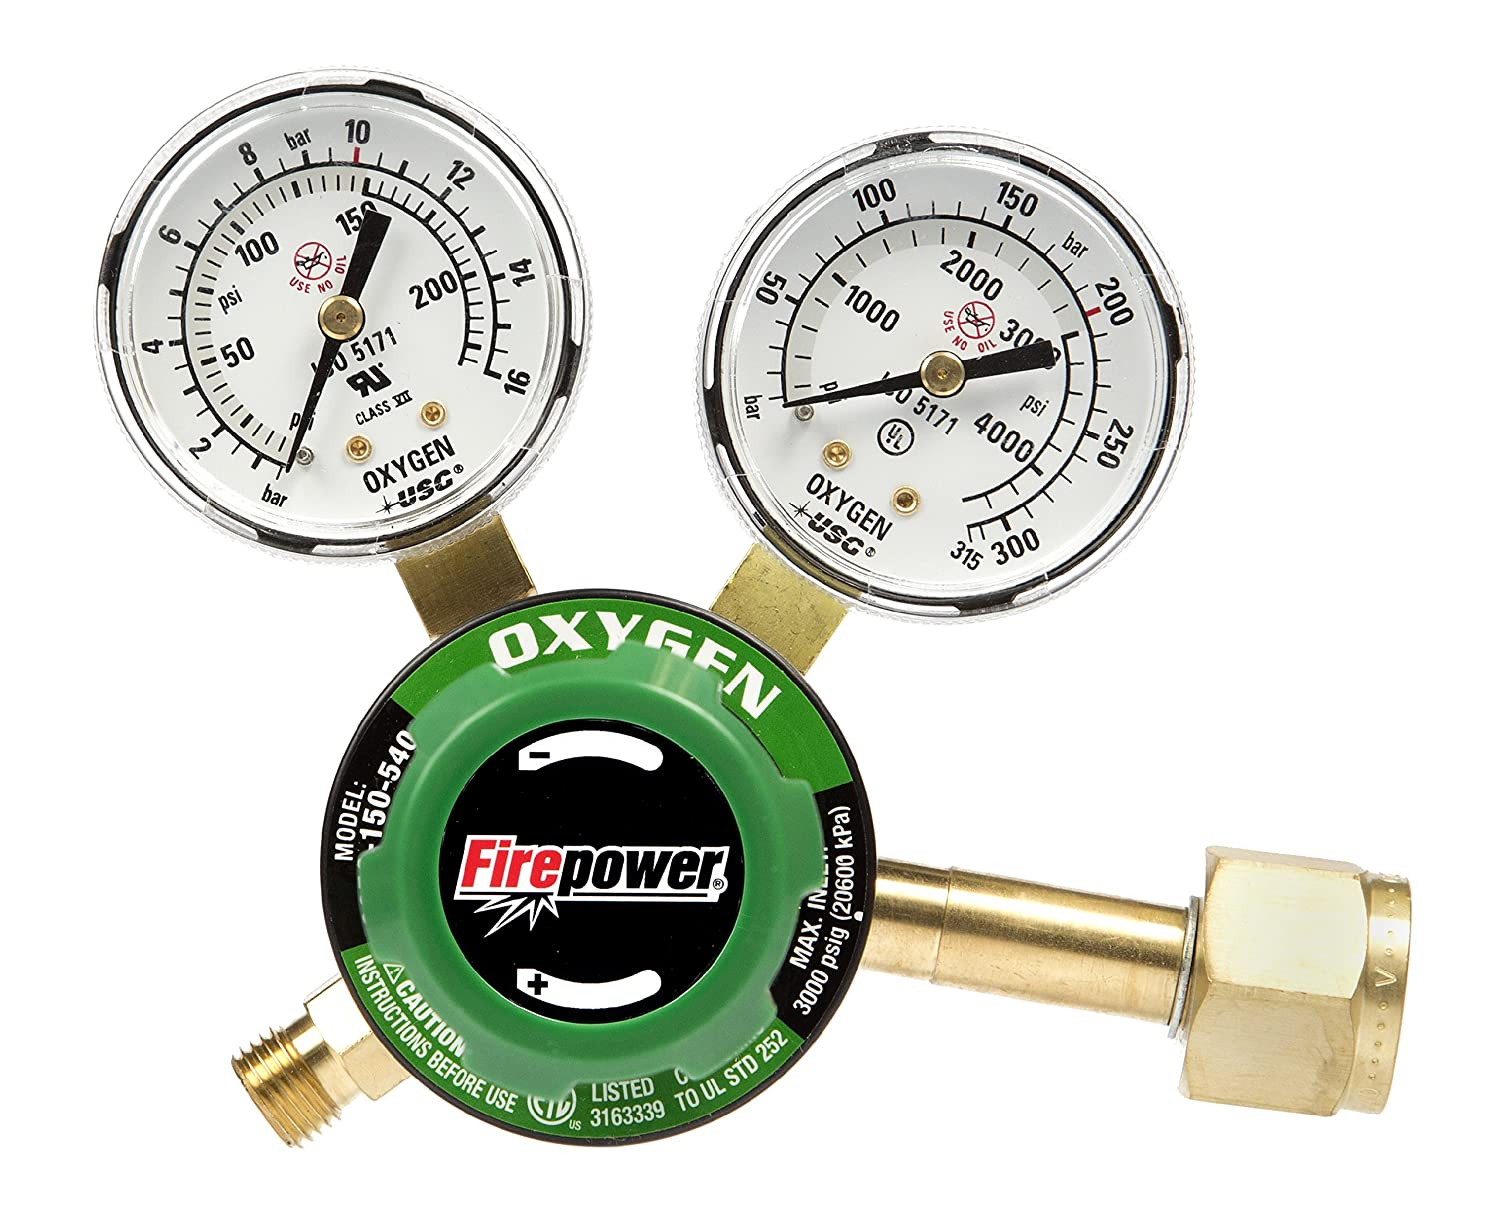 Firepower 0781-9826 250 Series OxyFuel Oxygen Regulator for Tips with a 5-Inch Cutting Capacity